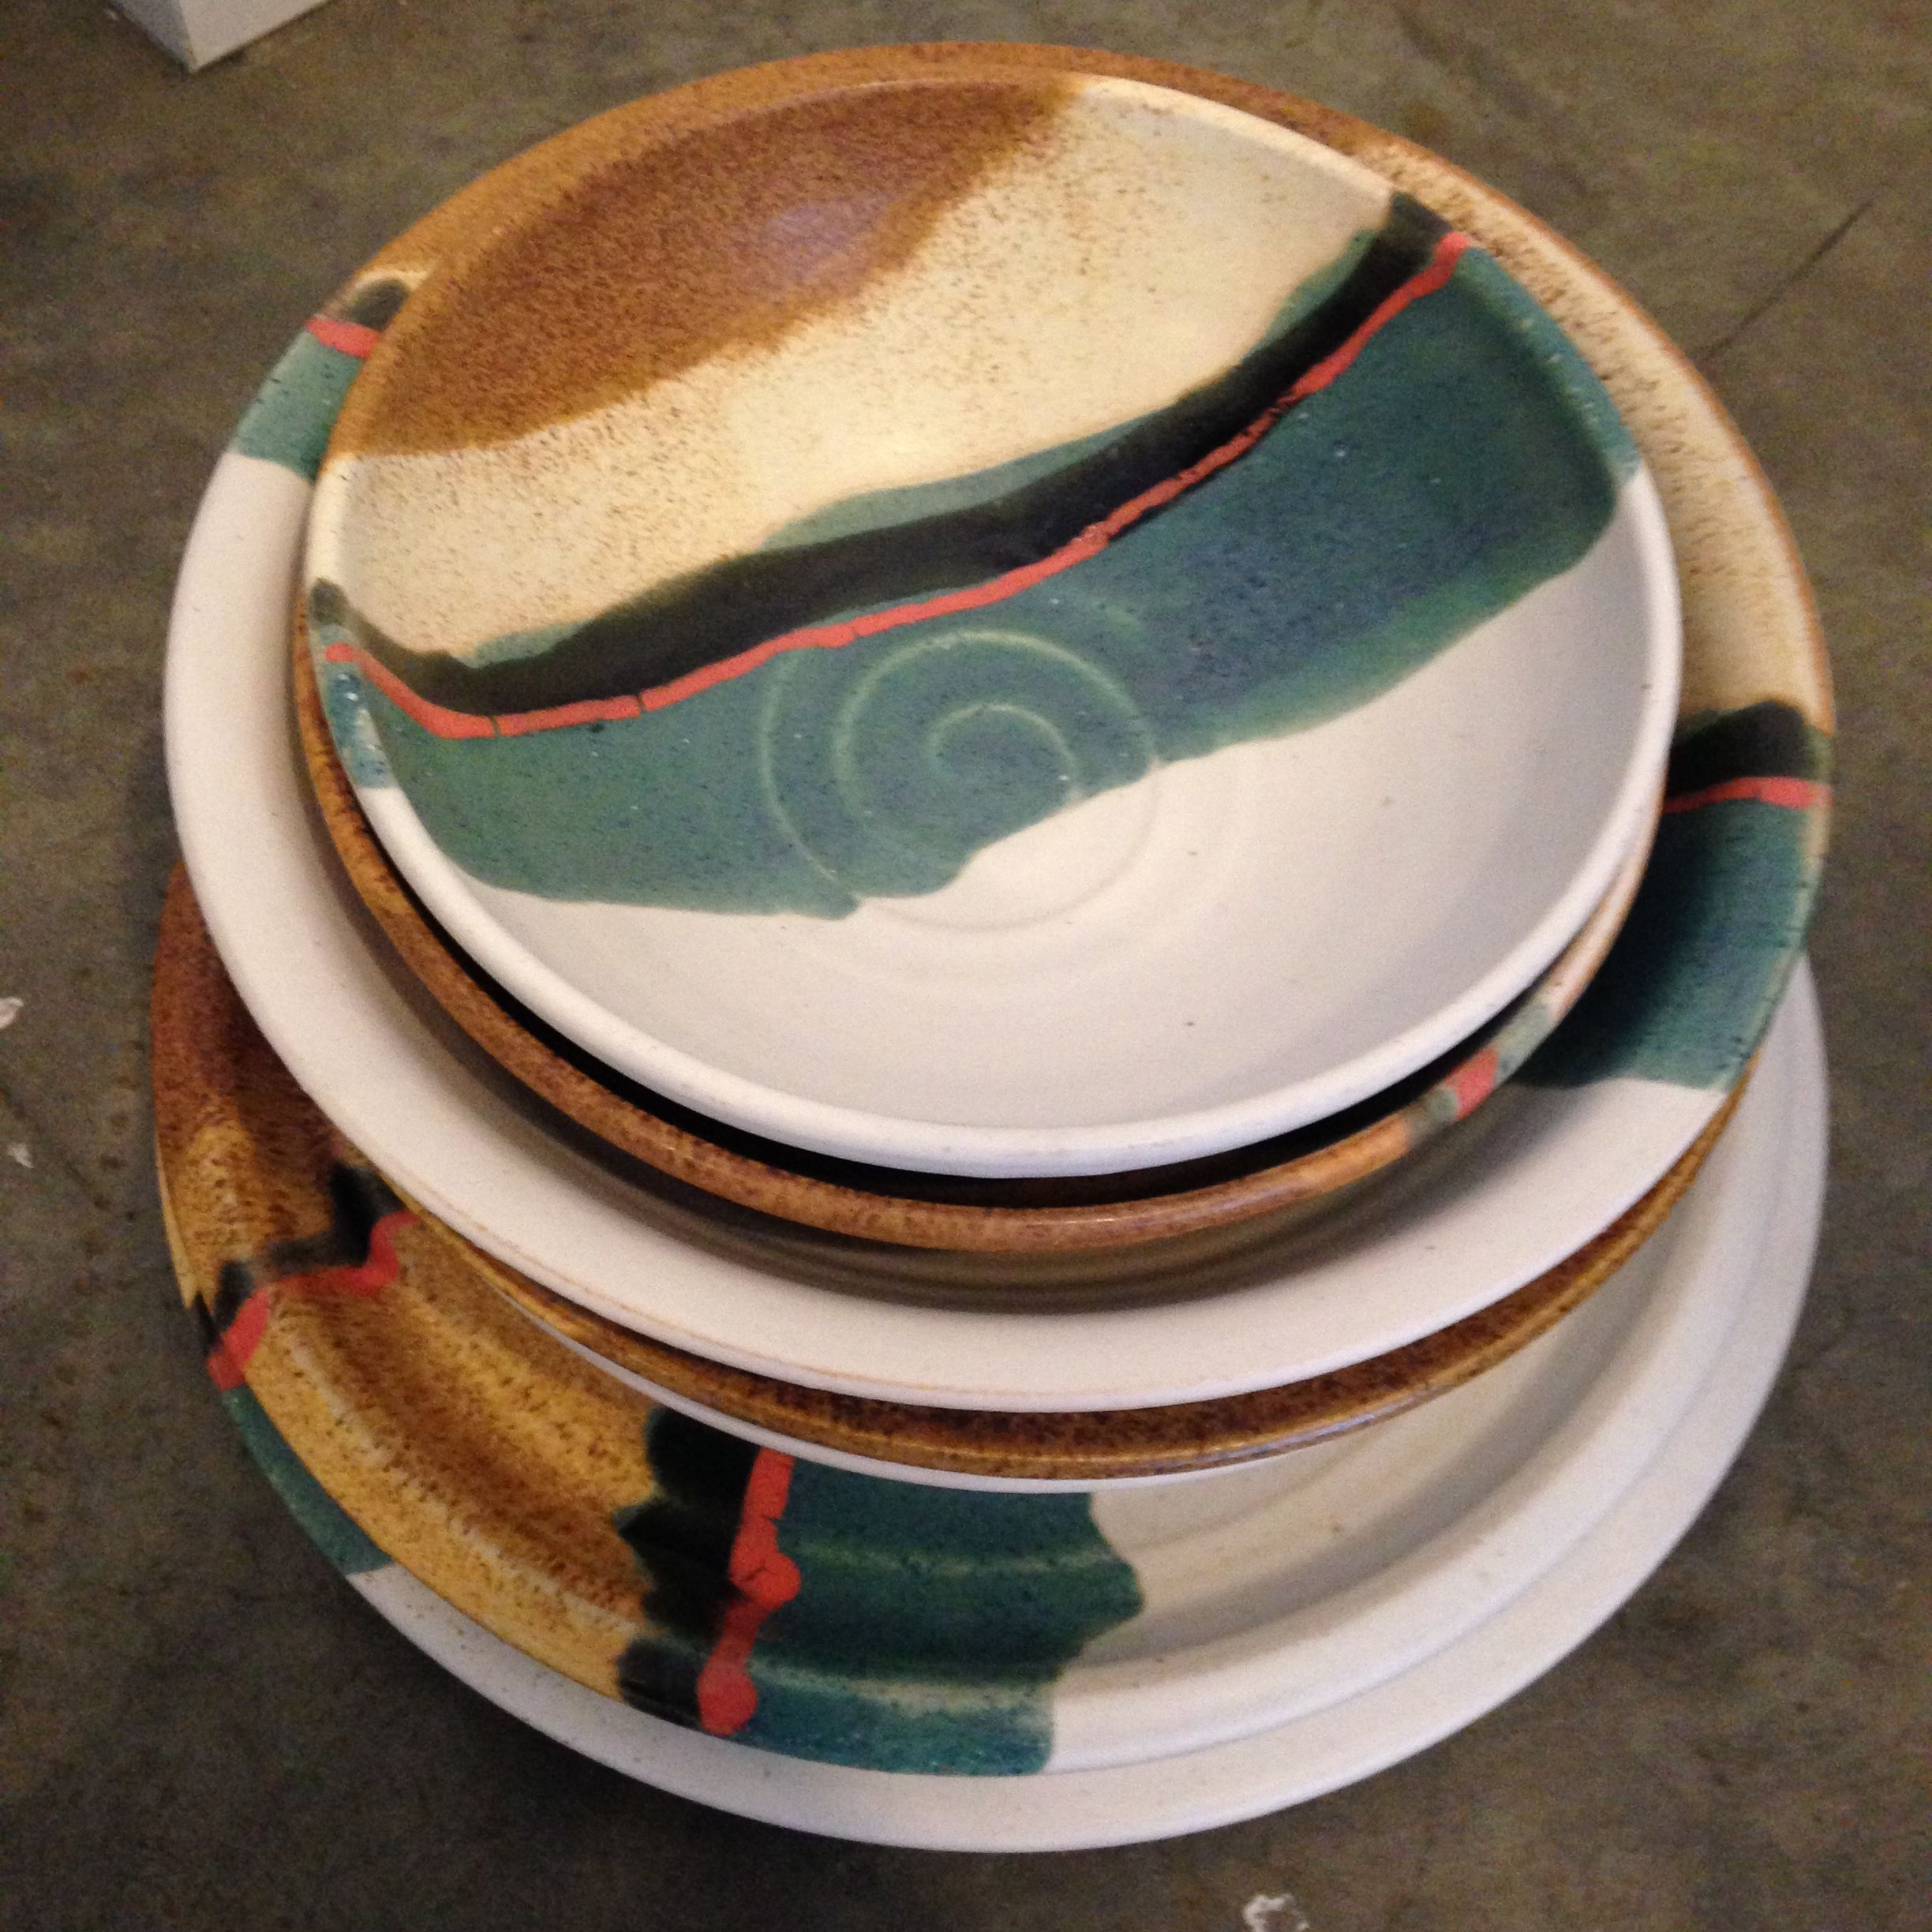 My Williamsburg Holiday Hit List Mociun where I found this amazing handcrafted dinnerware set by ceramist Robert Blue. & woven art rwanda - Google Search | RWANDA | Pinterest